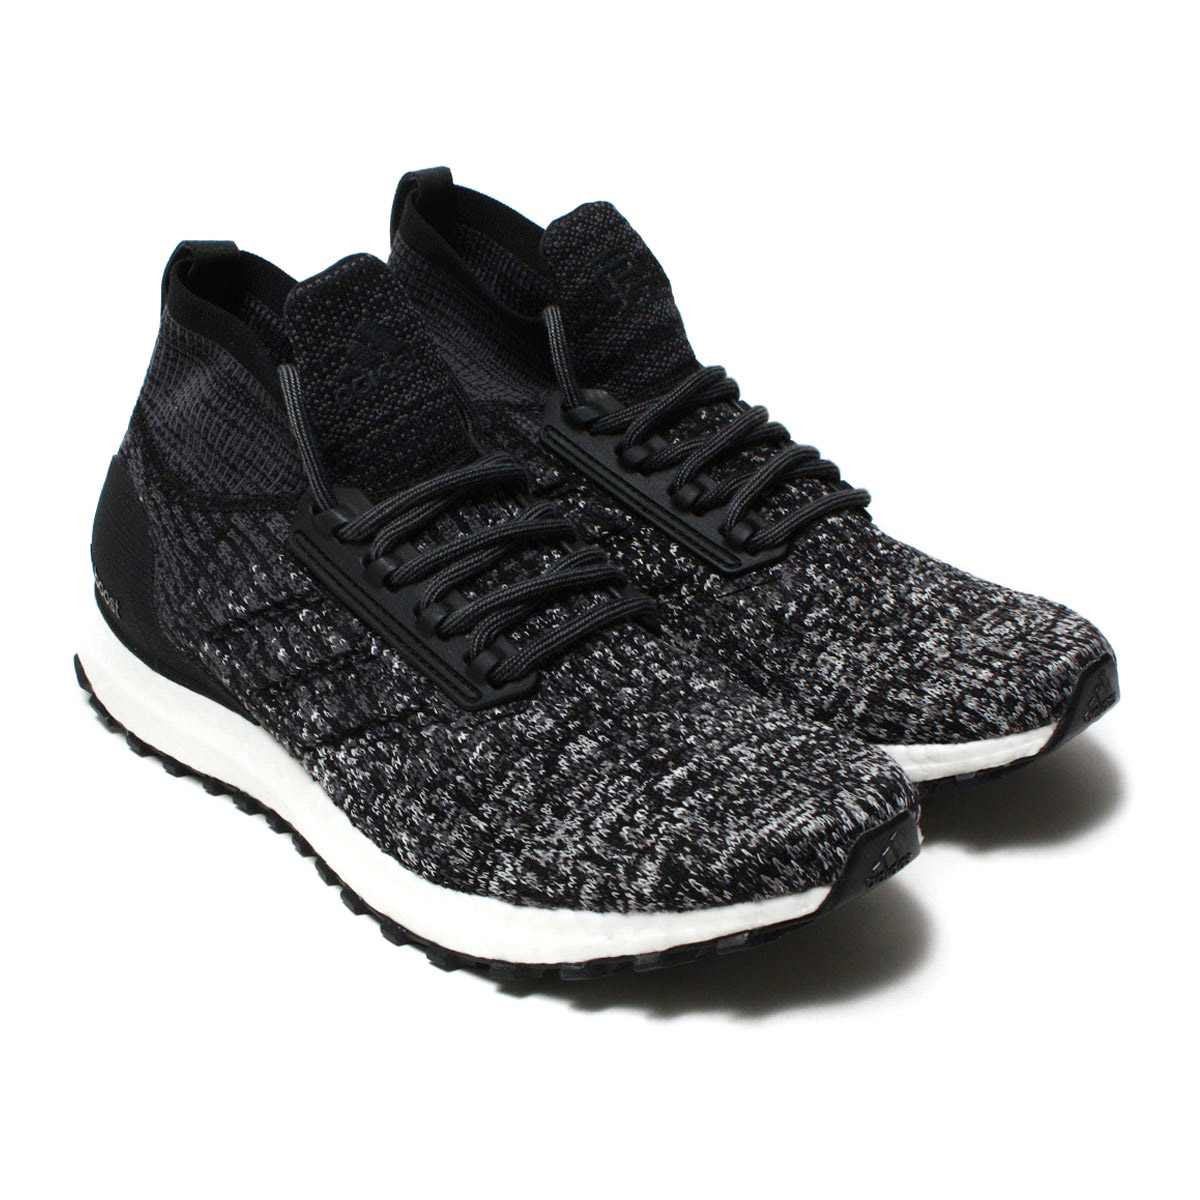 reputable site 0d64a 0a59b adidas Originals UltraBOOST ALL TERRAIN RC (Adidas originals ultra boost  oar terra in RC)Core Black/Core Black/Running White 18SS-I